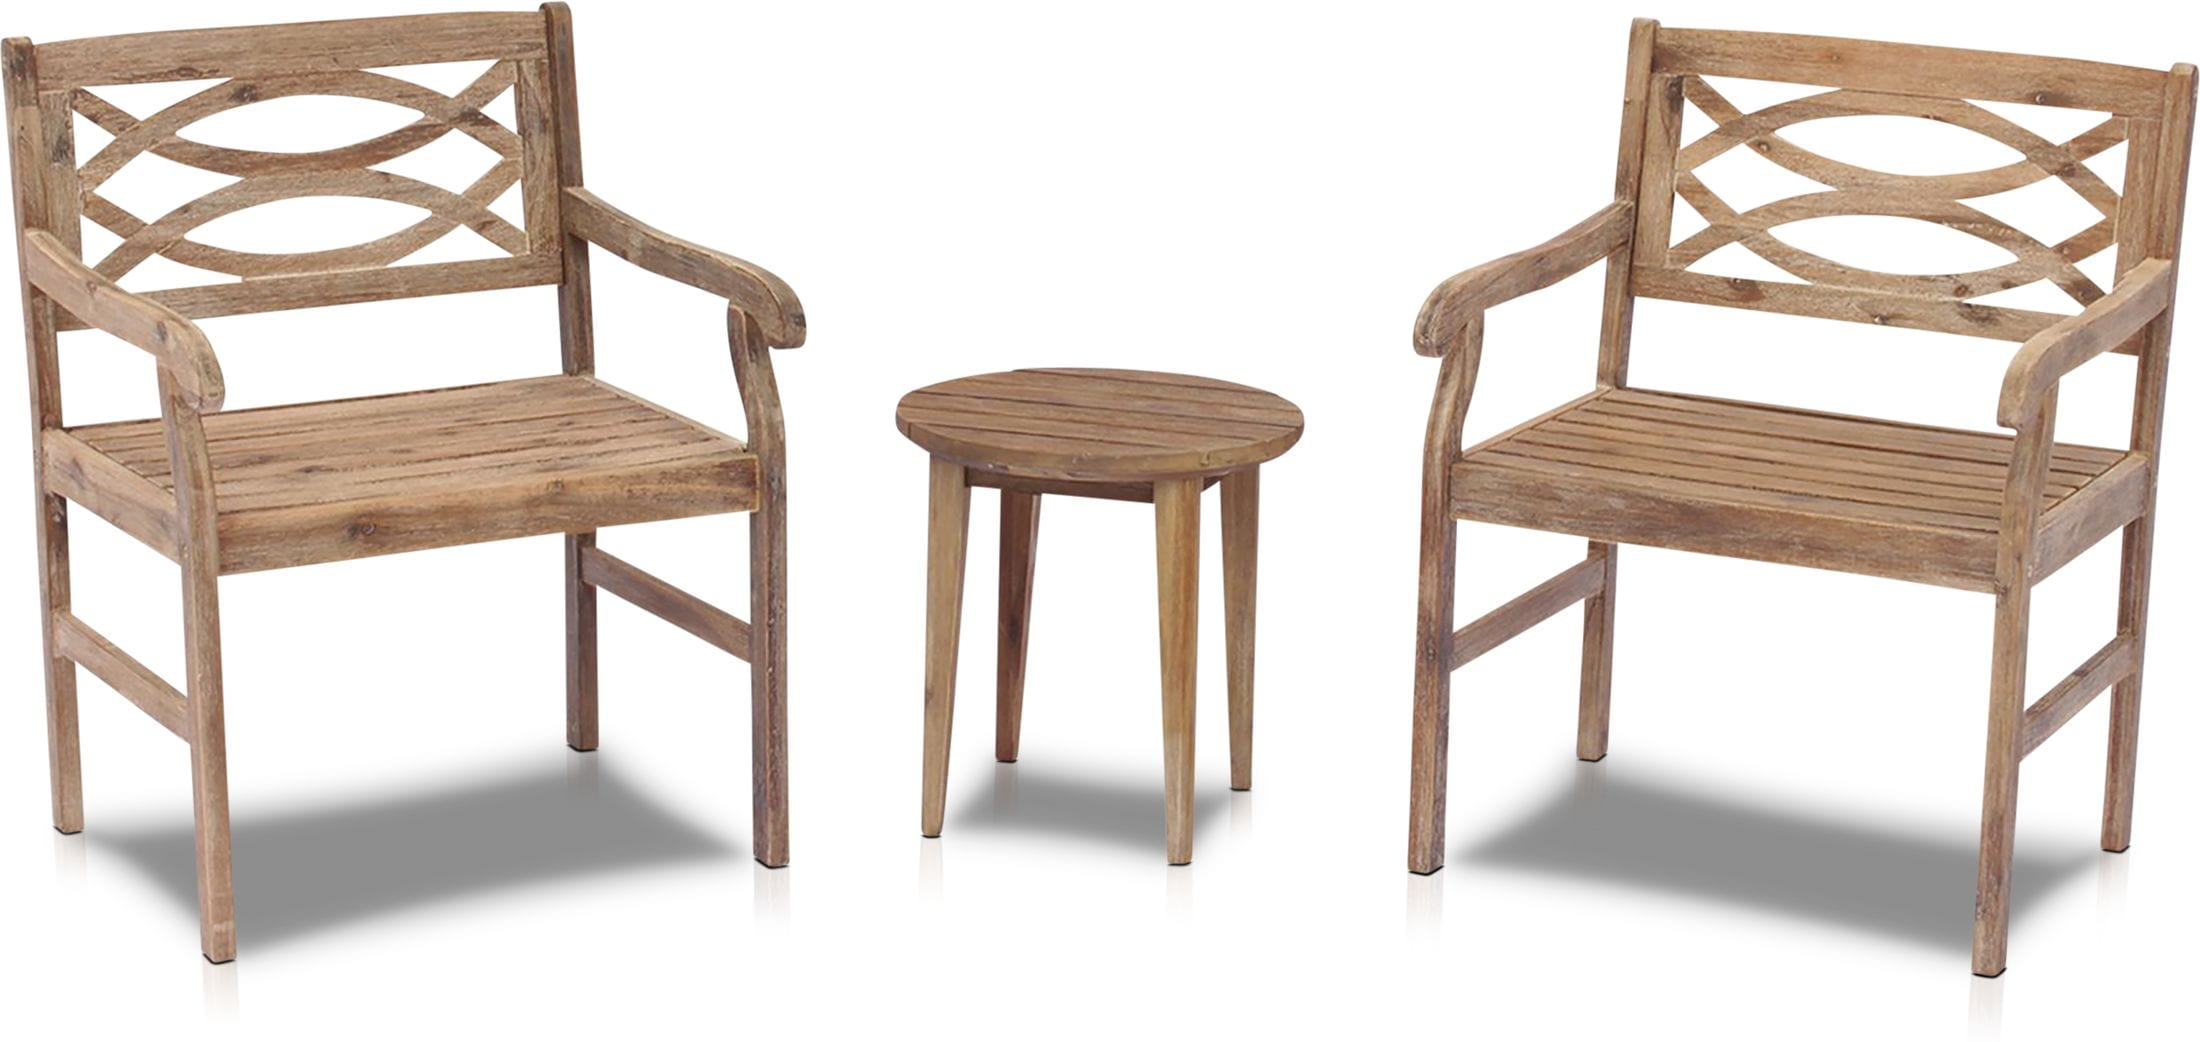 Outdoor Furniture - Dune Set of 2 Outdoor Chairs and End Table